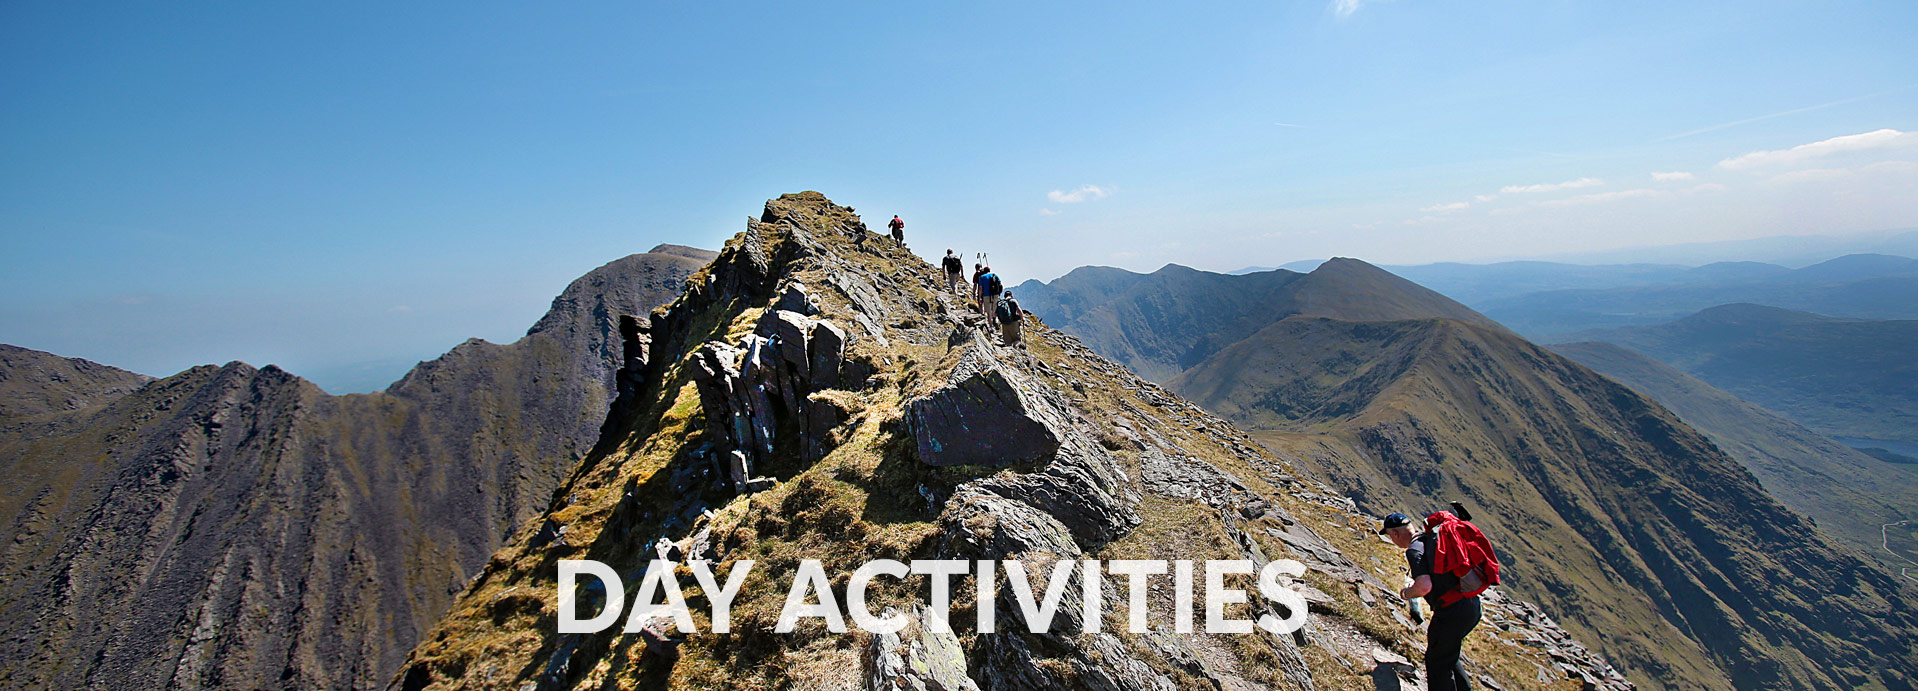 cappanalea day activities